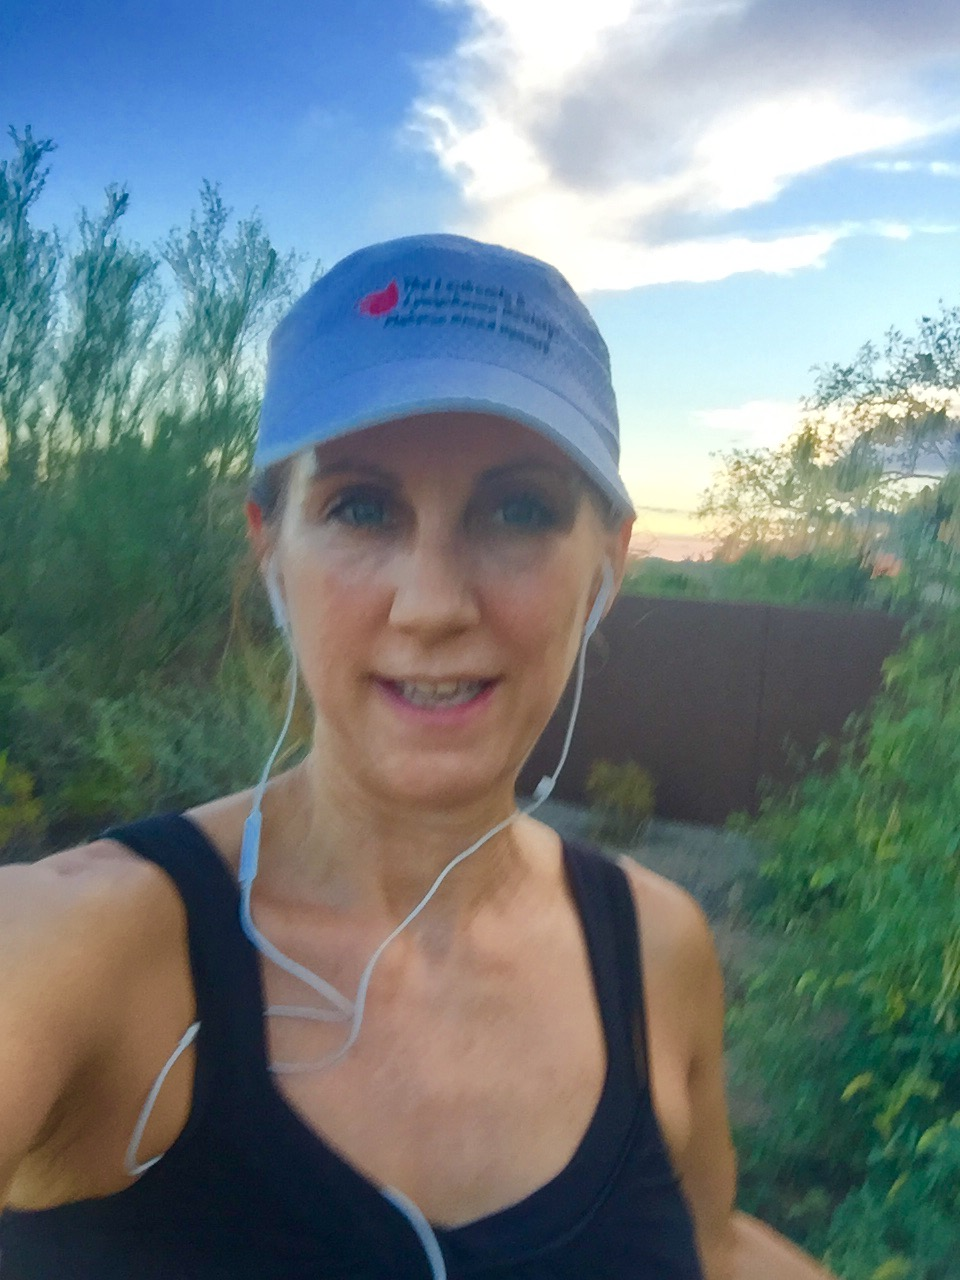 I ran 4 miles in the evening, right as the sun was setting.